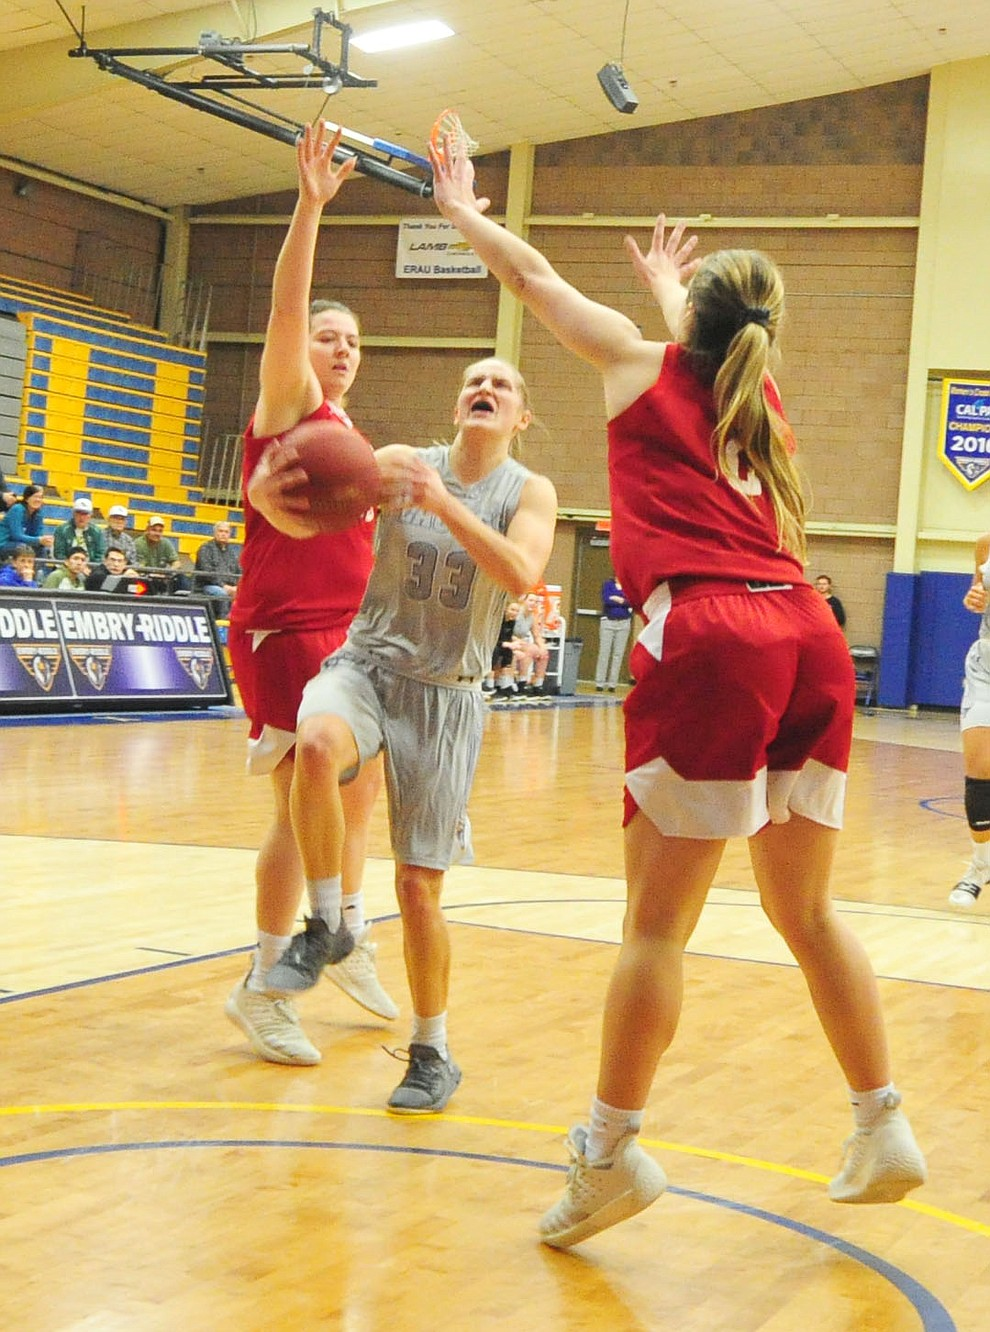 Embry Riddle's Jenna Knudson drives between a pair of defenders as the Eagles take on the Simpson University Redhawks Thursday, Jan. 31, 2019 in Prescott. (Les Stukenberg/Courier).